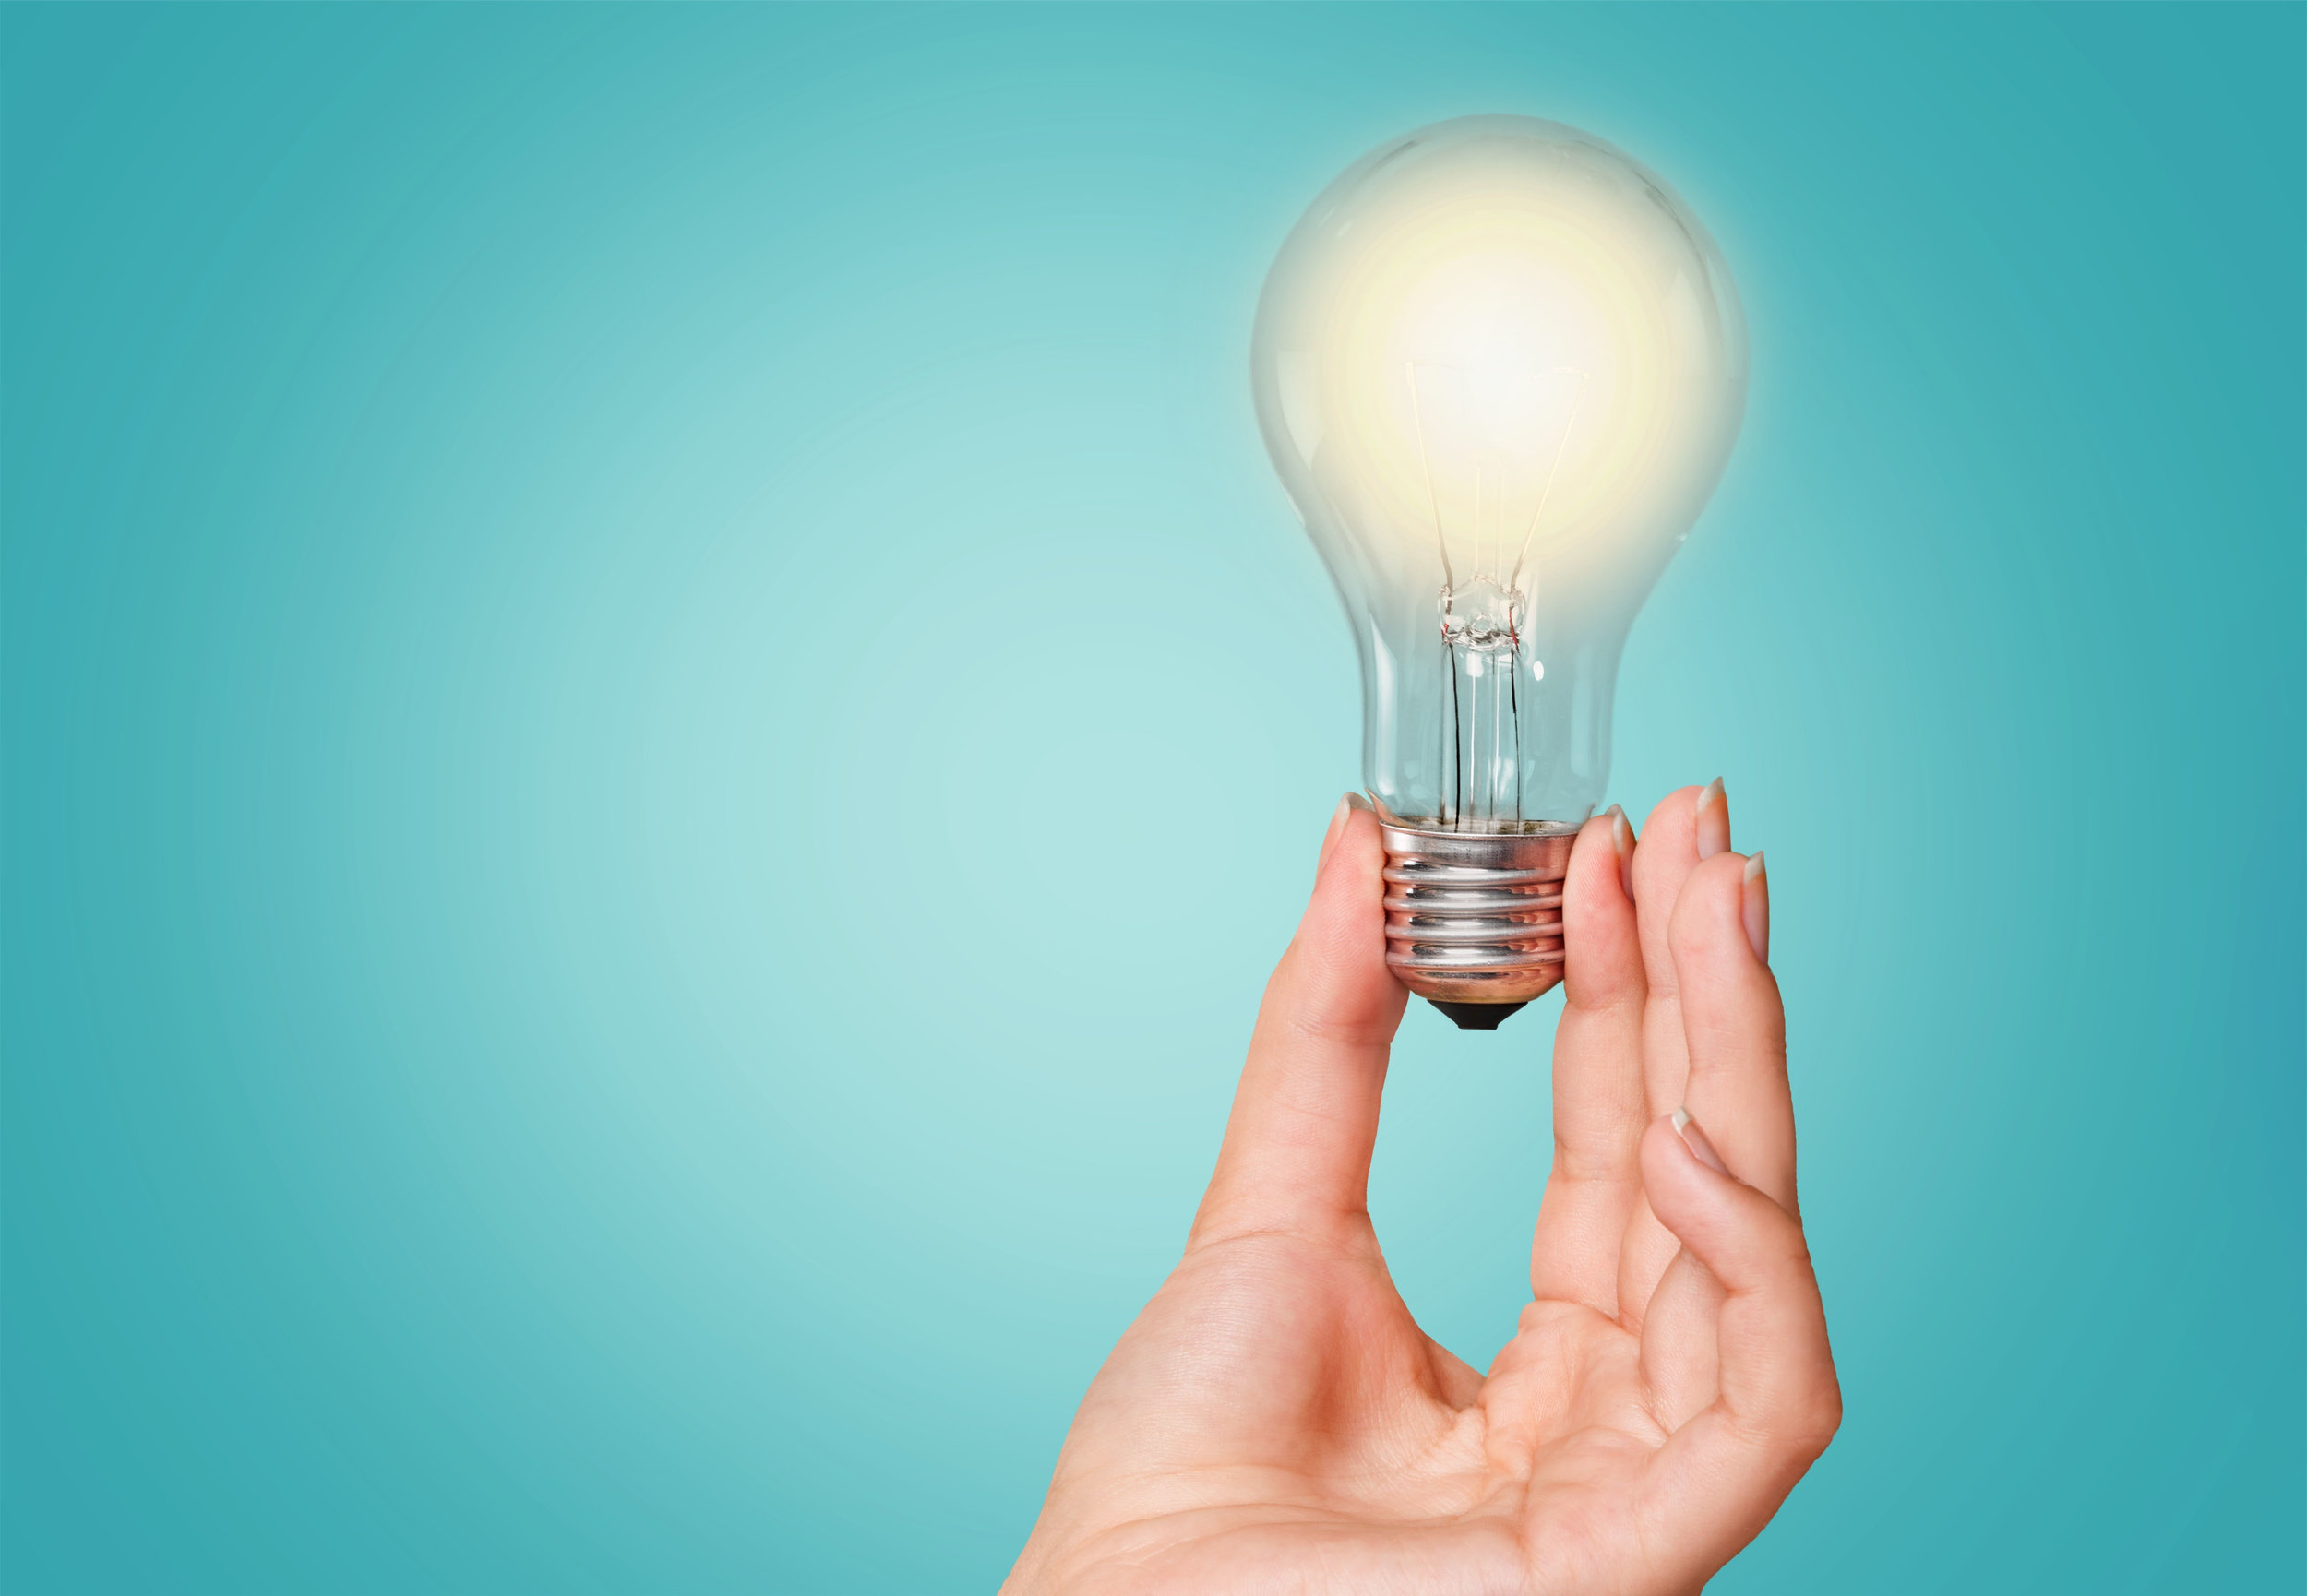 INTELLECTUAL PROPERTY LAW   We counsel clients before, during, and after each transaction involving copyrights, trademarks, patents, and trade secrets.